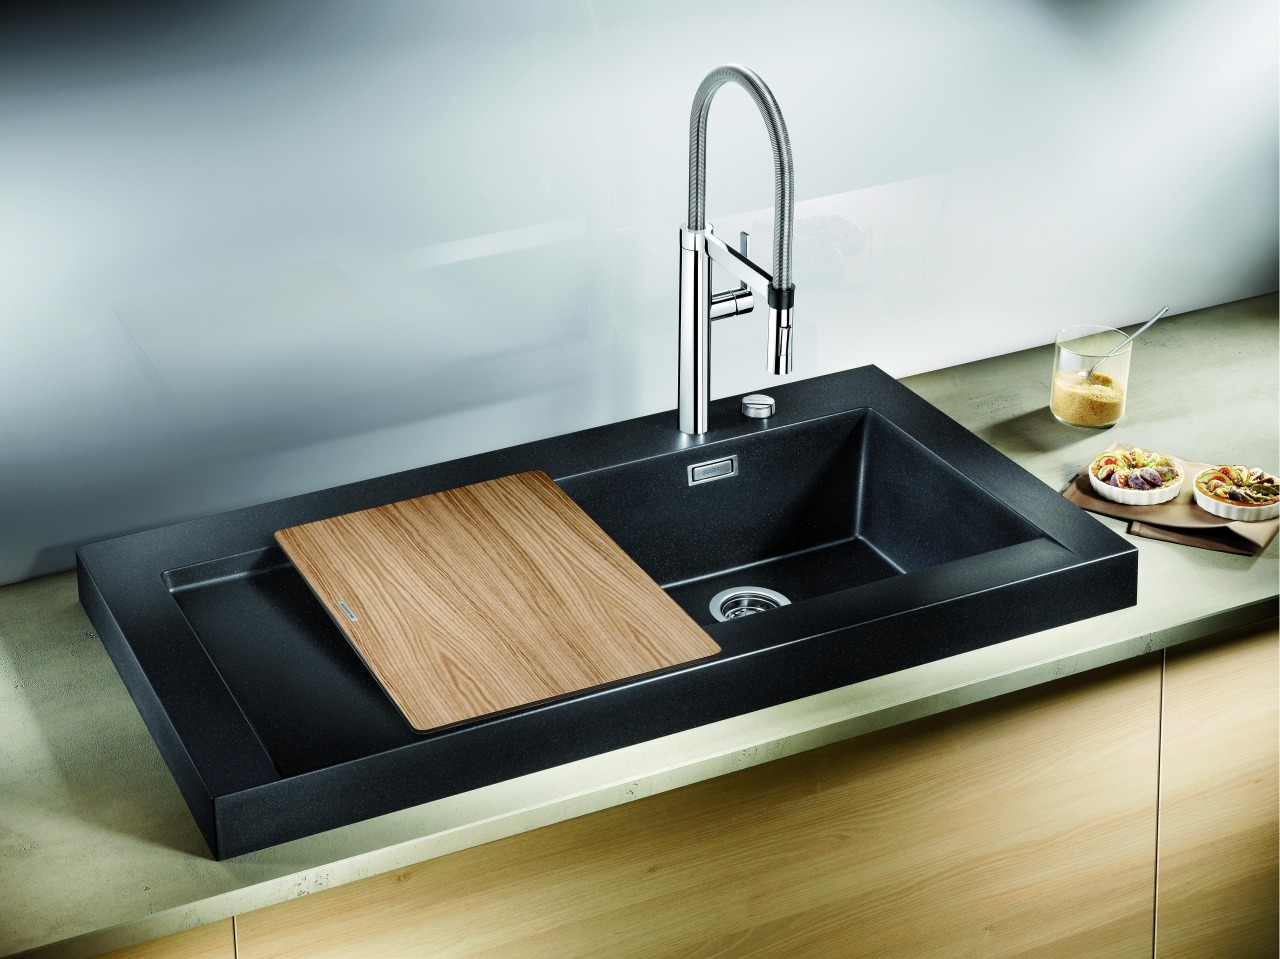 Opting for a sink that supports a chopping bathroom sink, plumbing fixture, product, product design, sink, tap, white